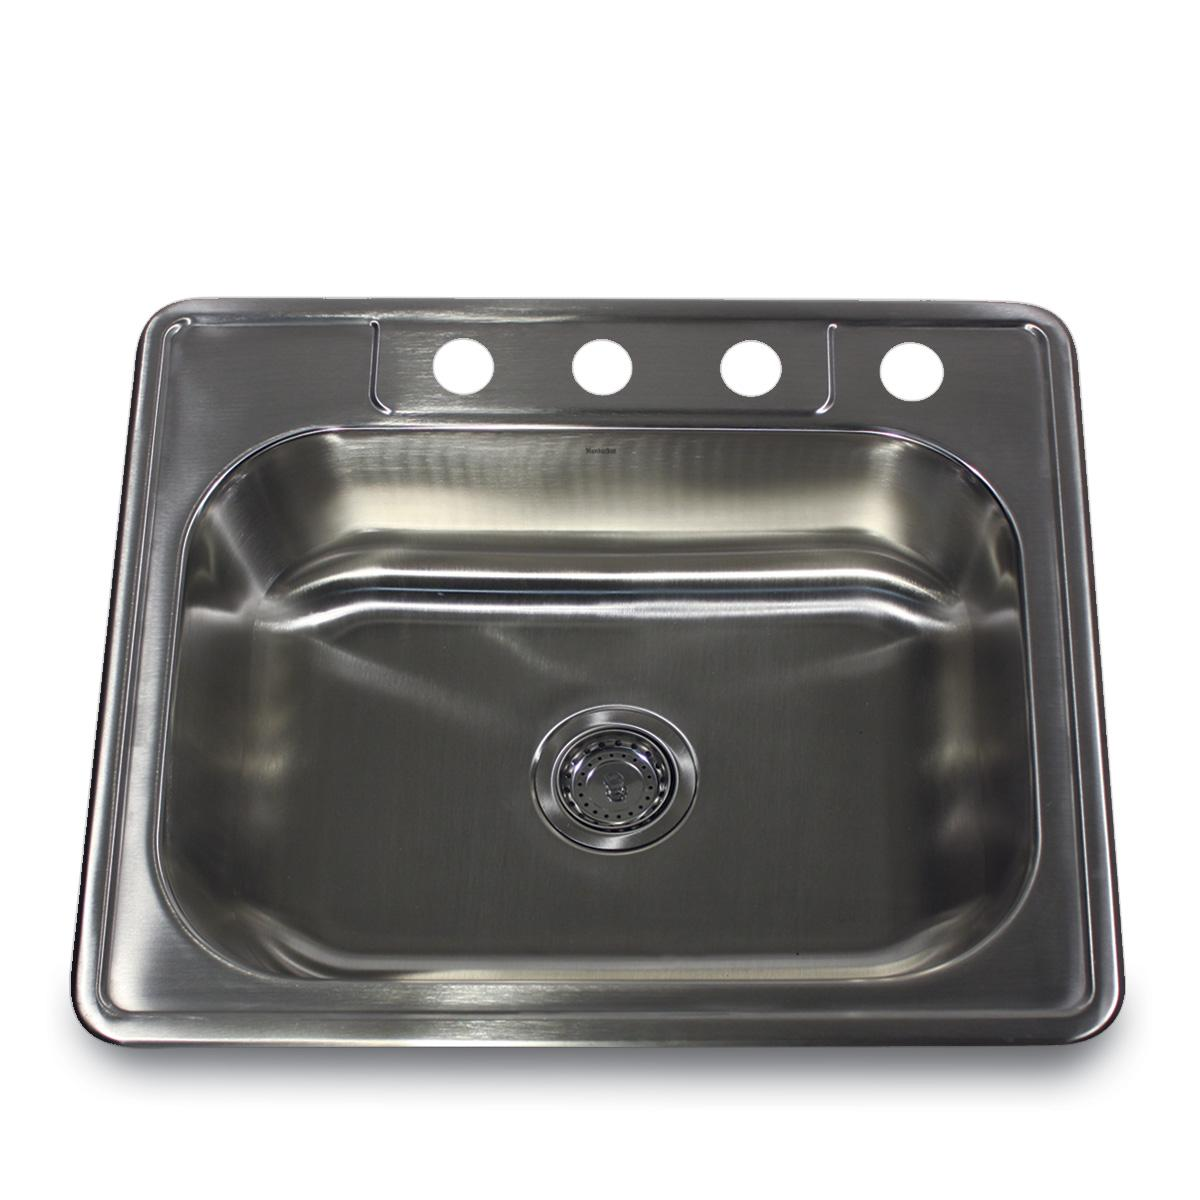 ... Bowl Kitchen Sink - Overstock Shopping - Great Deals on Kitchen Sinks